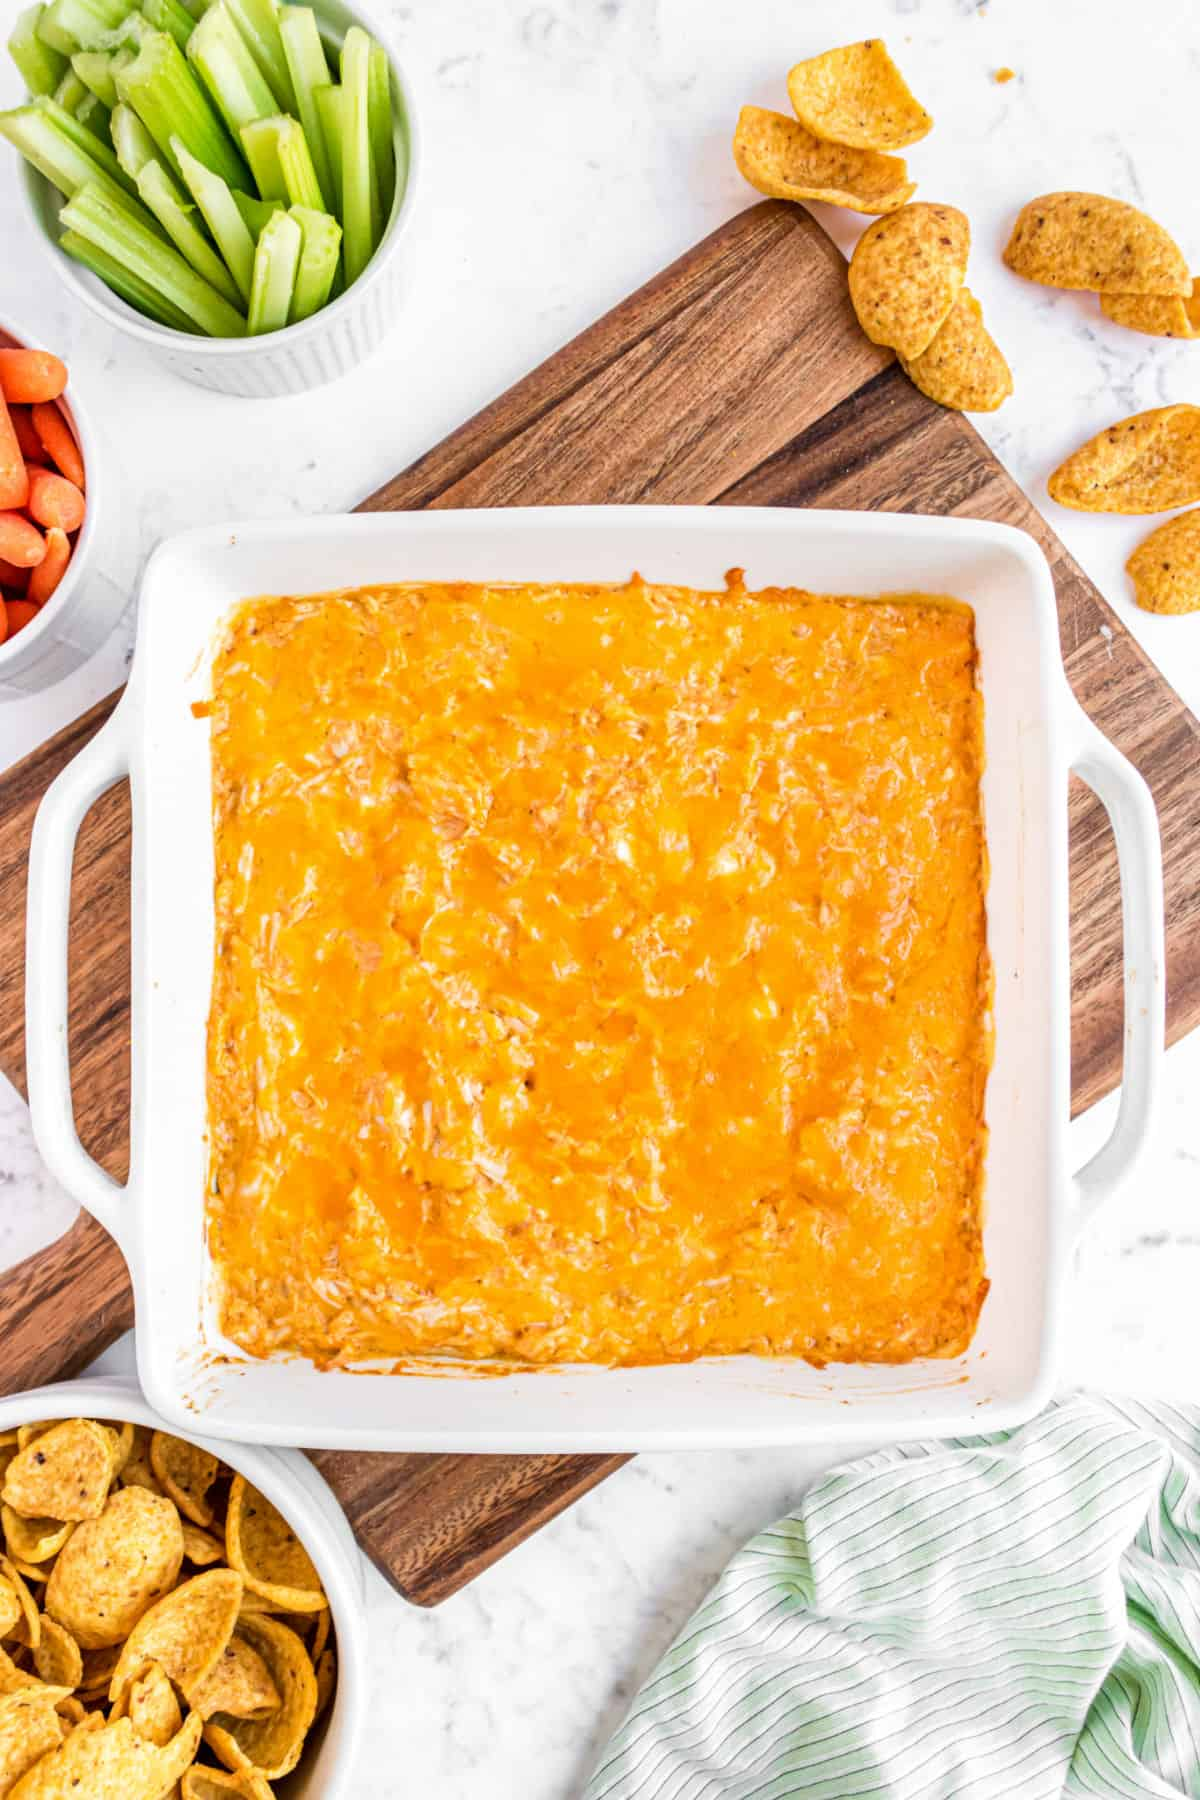 Baking dish with buffalo chicken dip and vegetables on the side.